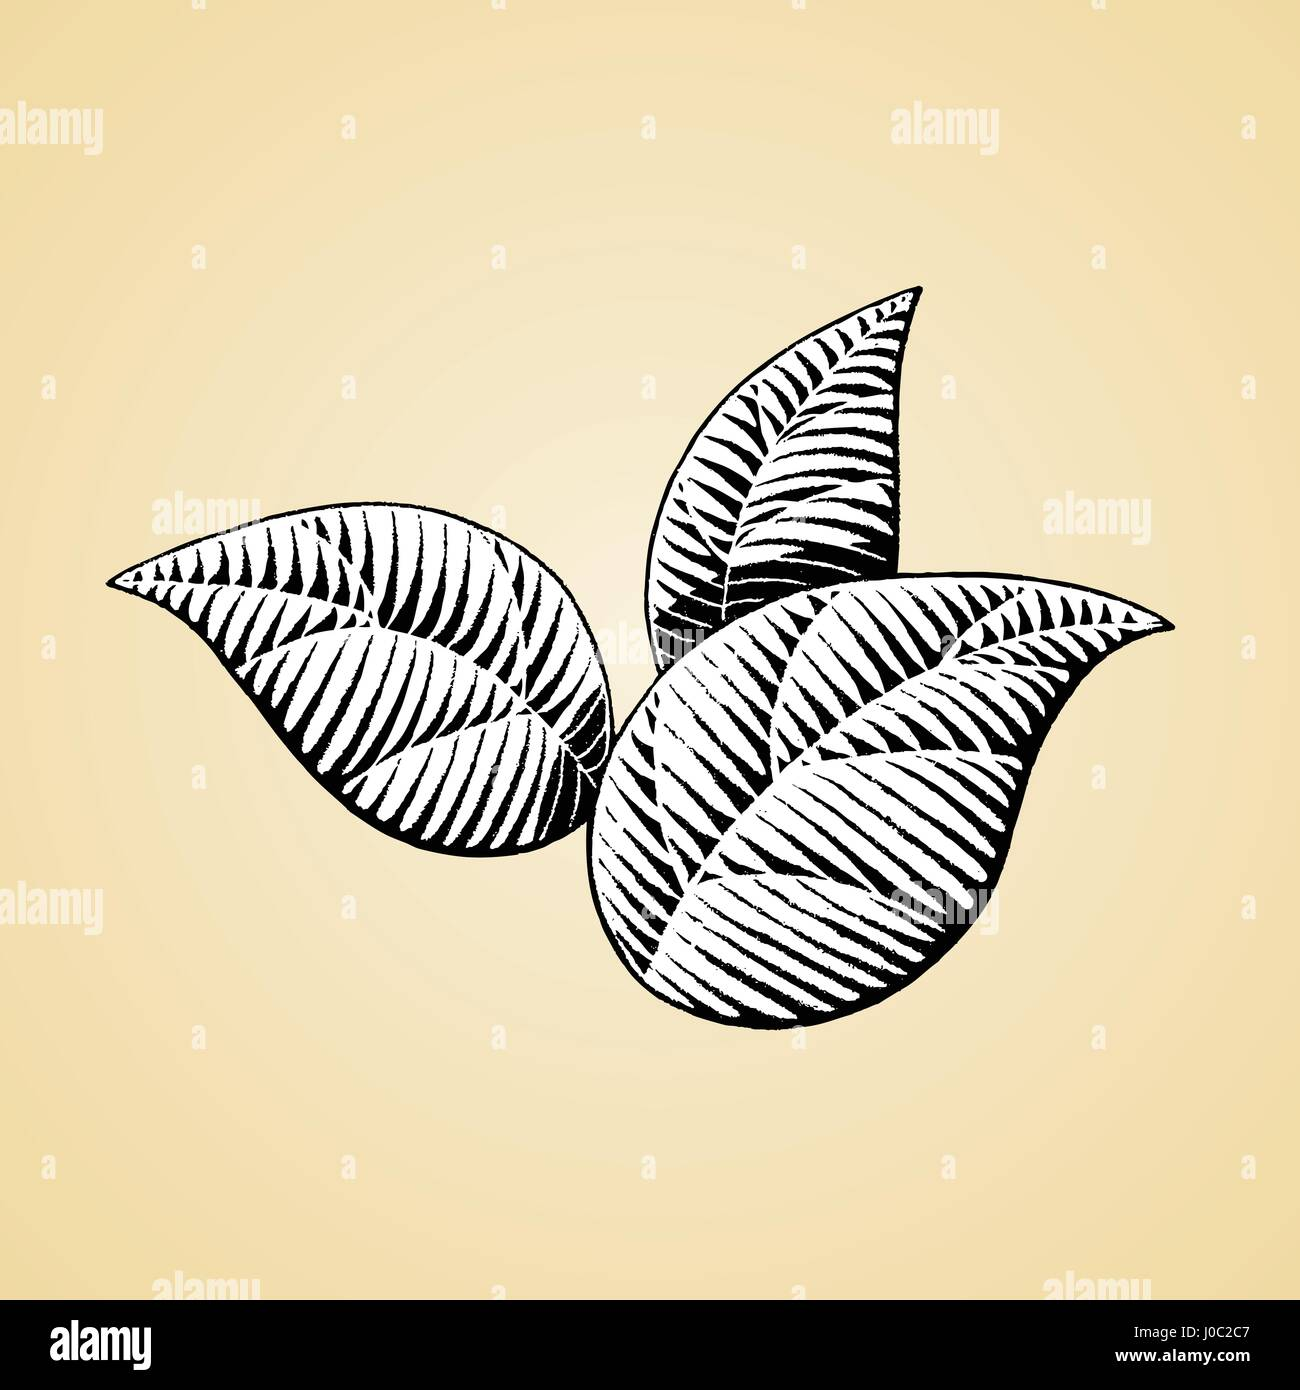 Vector Illustration of a Scratchboard Style Ink Drawing of Leaves with White Fill - Stock Vector